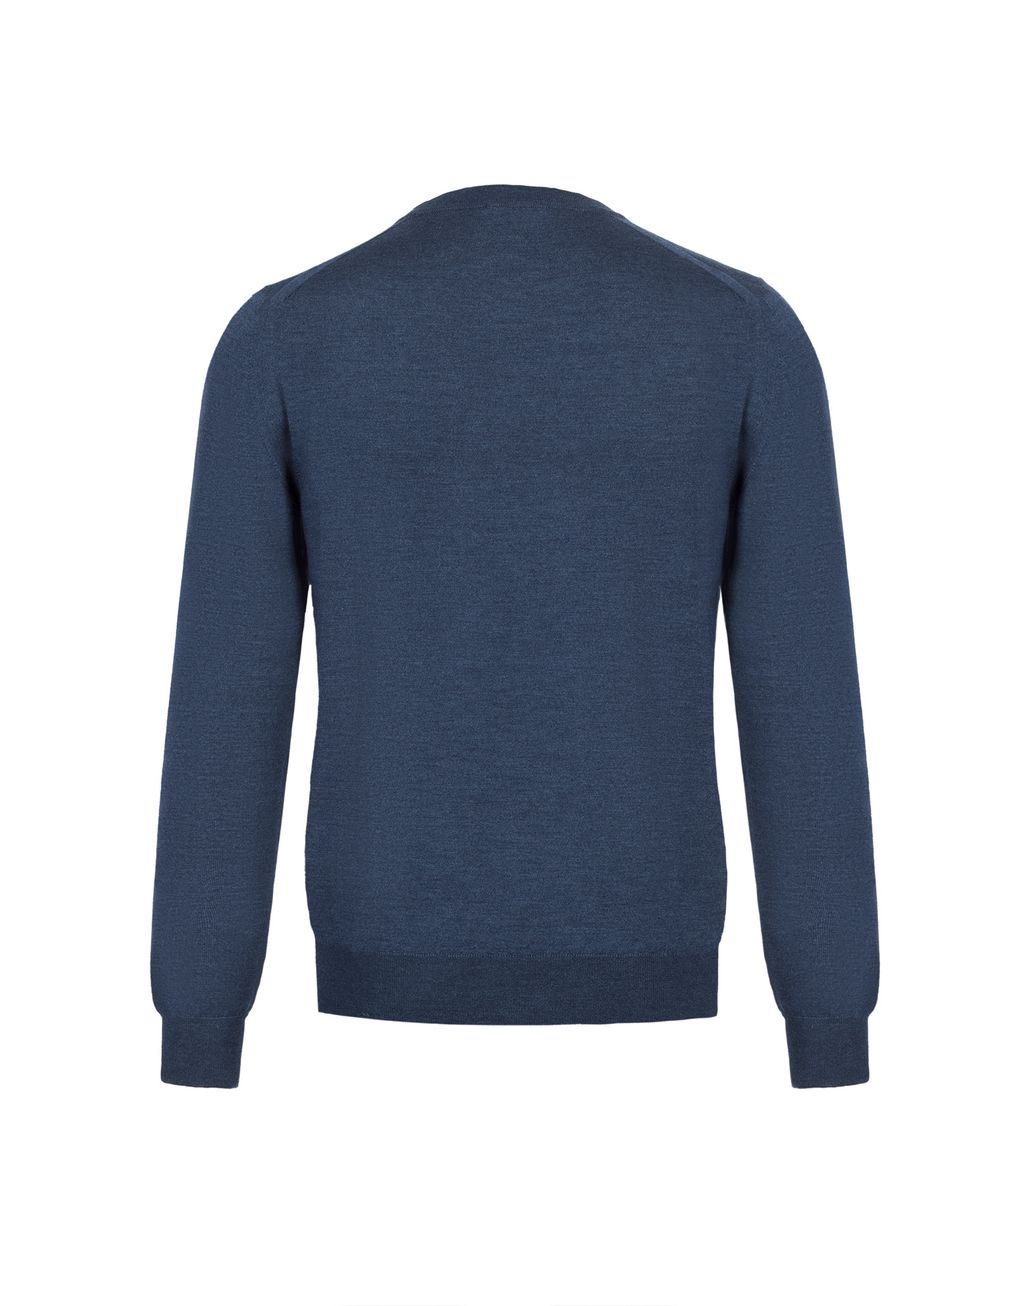 BRIONI Bluette Crew-Neck Sweater Knitwear [*** pickupInStoreShippingNotGuaranteed_info ***] d